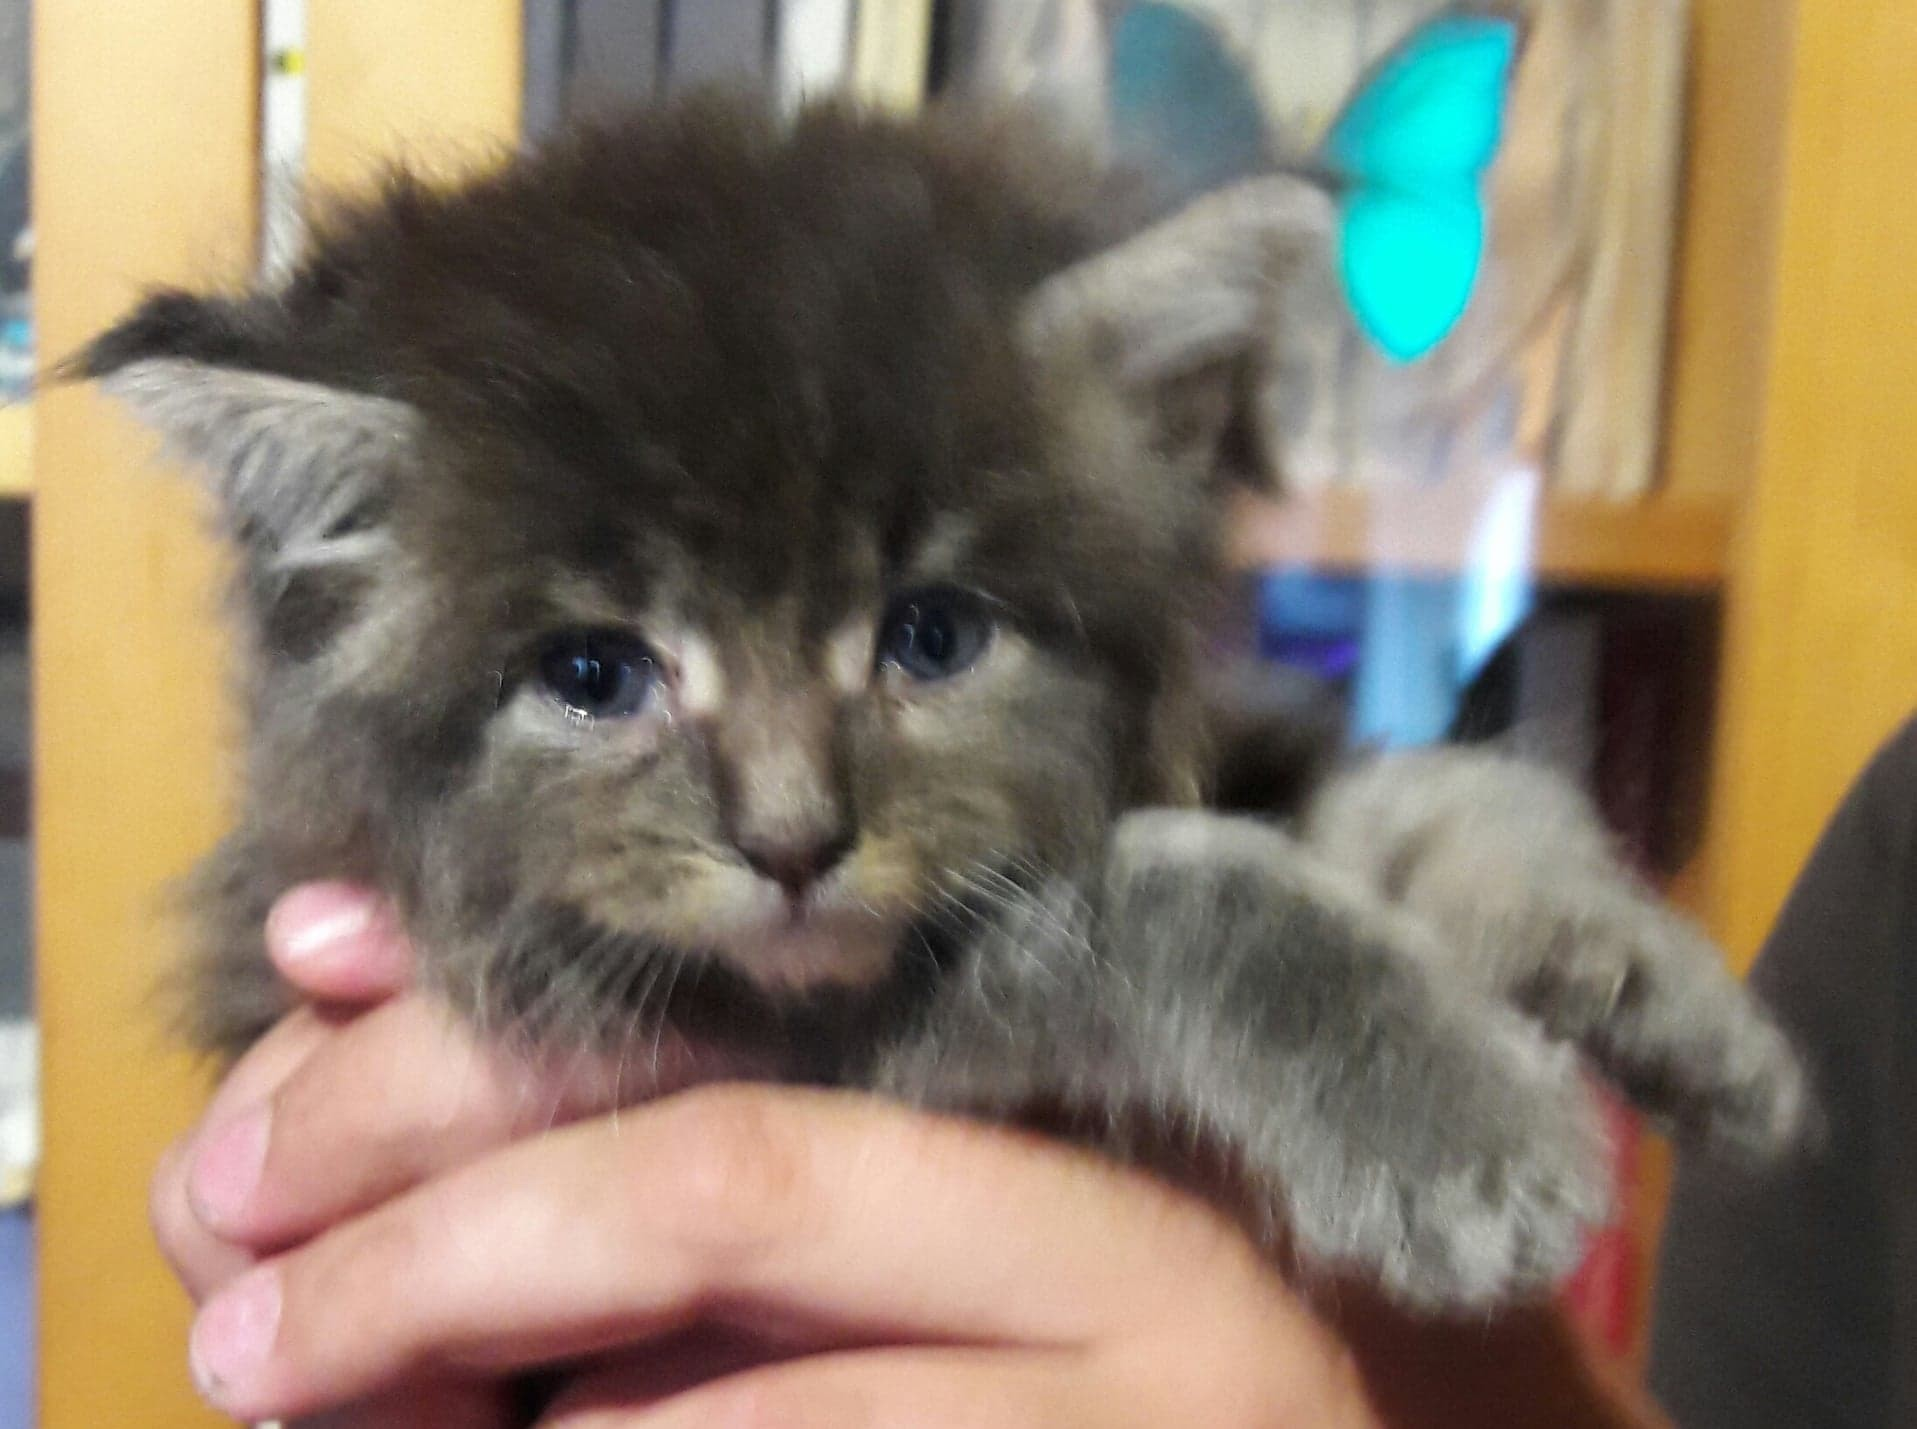 Massif Chaton Maine Coon A Reserver Annonce De Chat Chaton Maine Coon A Vendre Pepan